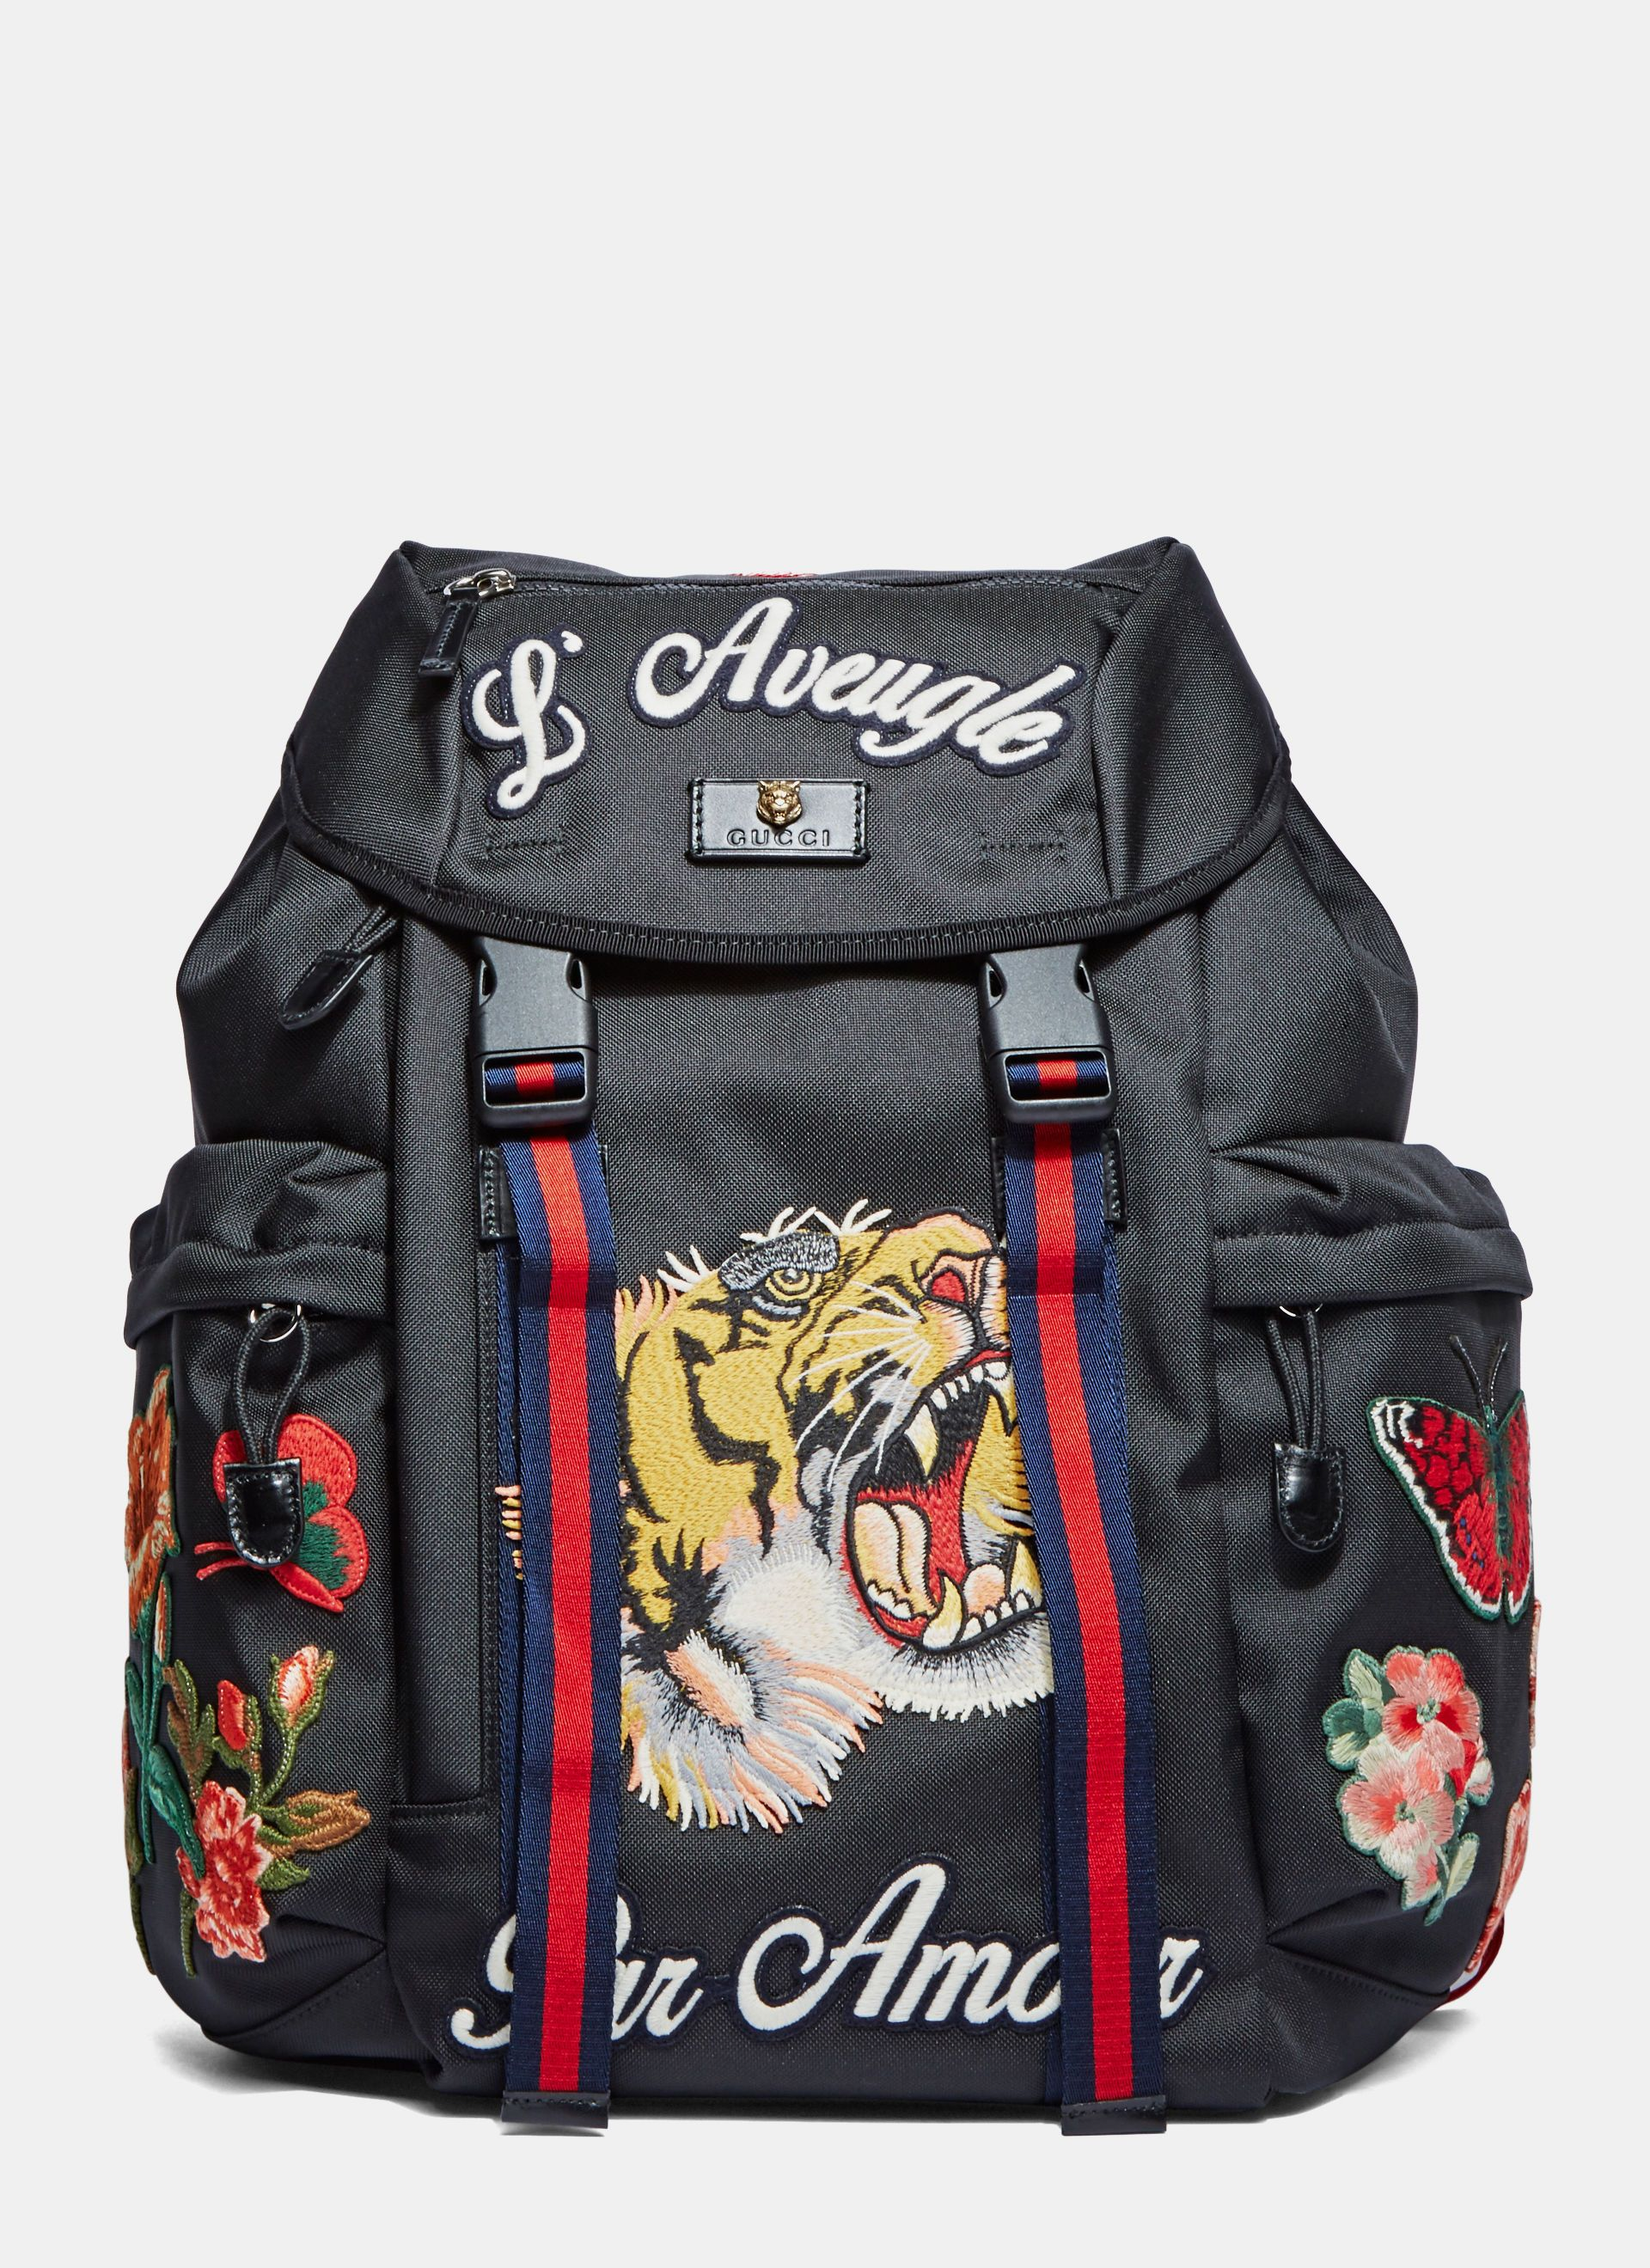 077cefe26a GUCCI Men'S Zaino Embroidered Patch Canvas Backpack In Black. #gucci #bags  #leather #canvas #backpacks #cotton #